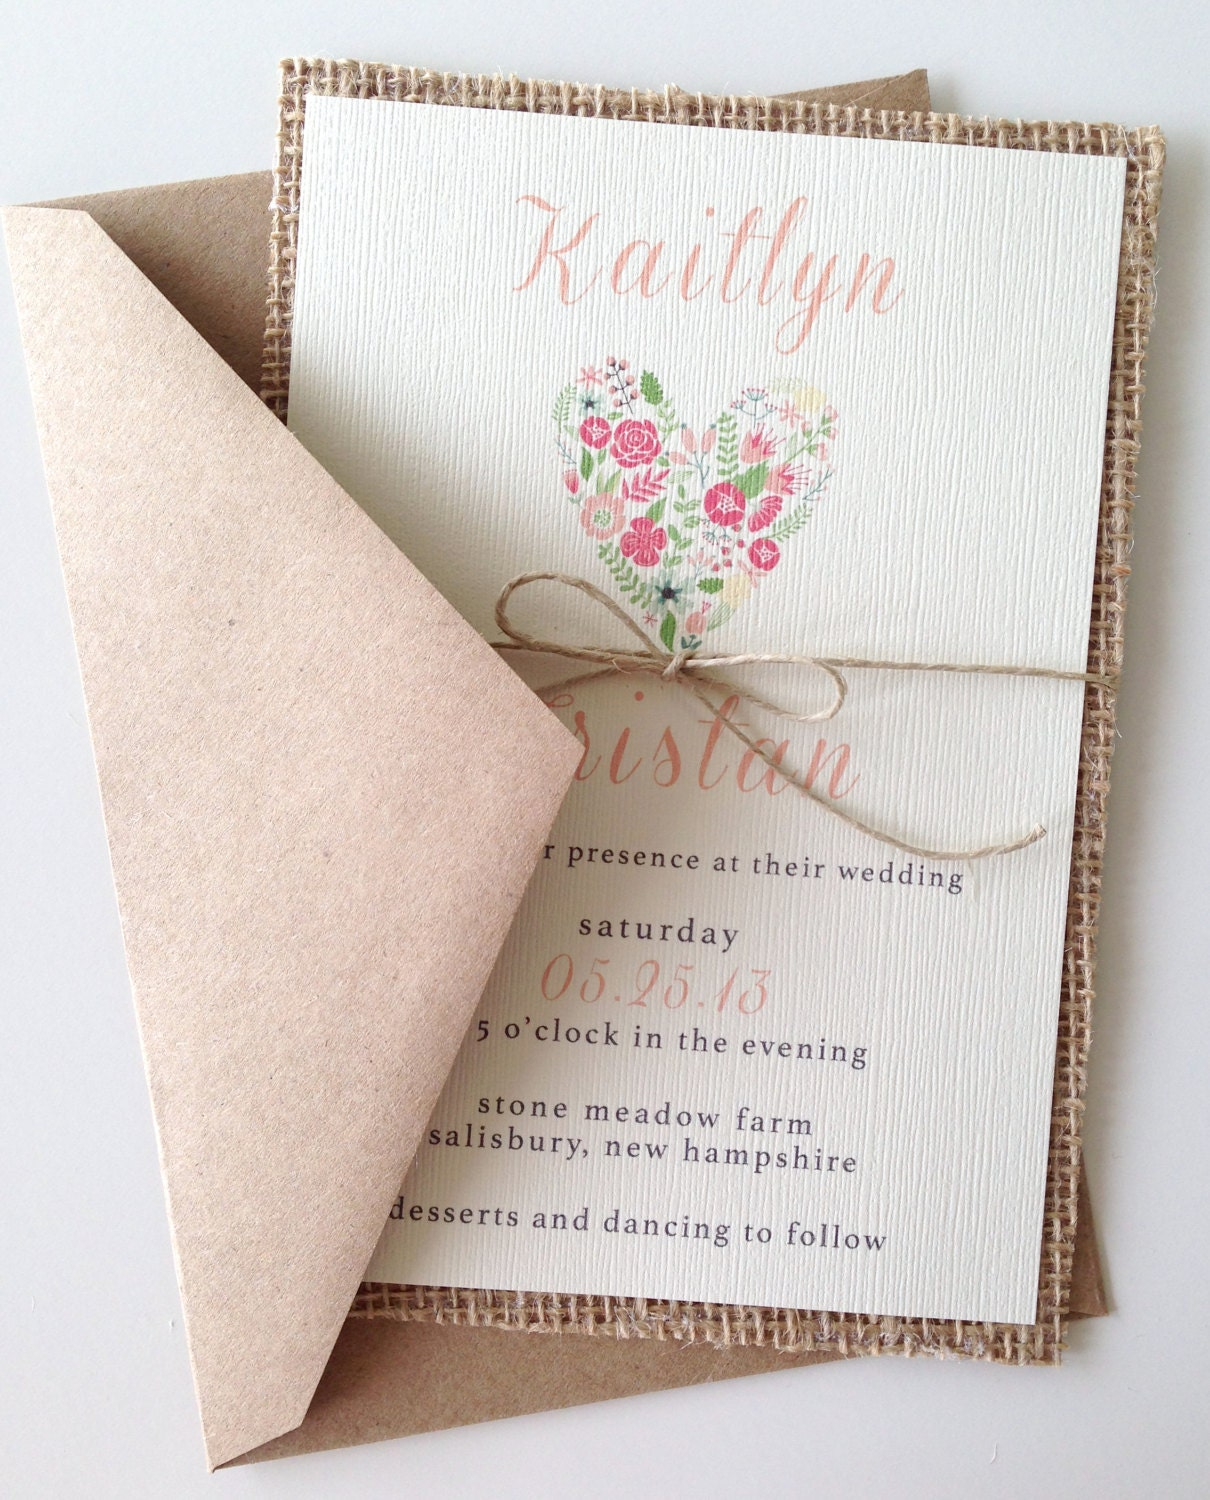 Heart Images For Wedding Invitations: Rustic Burlap Heart Wedding Invitations